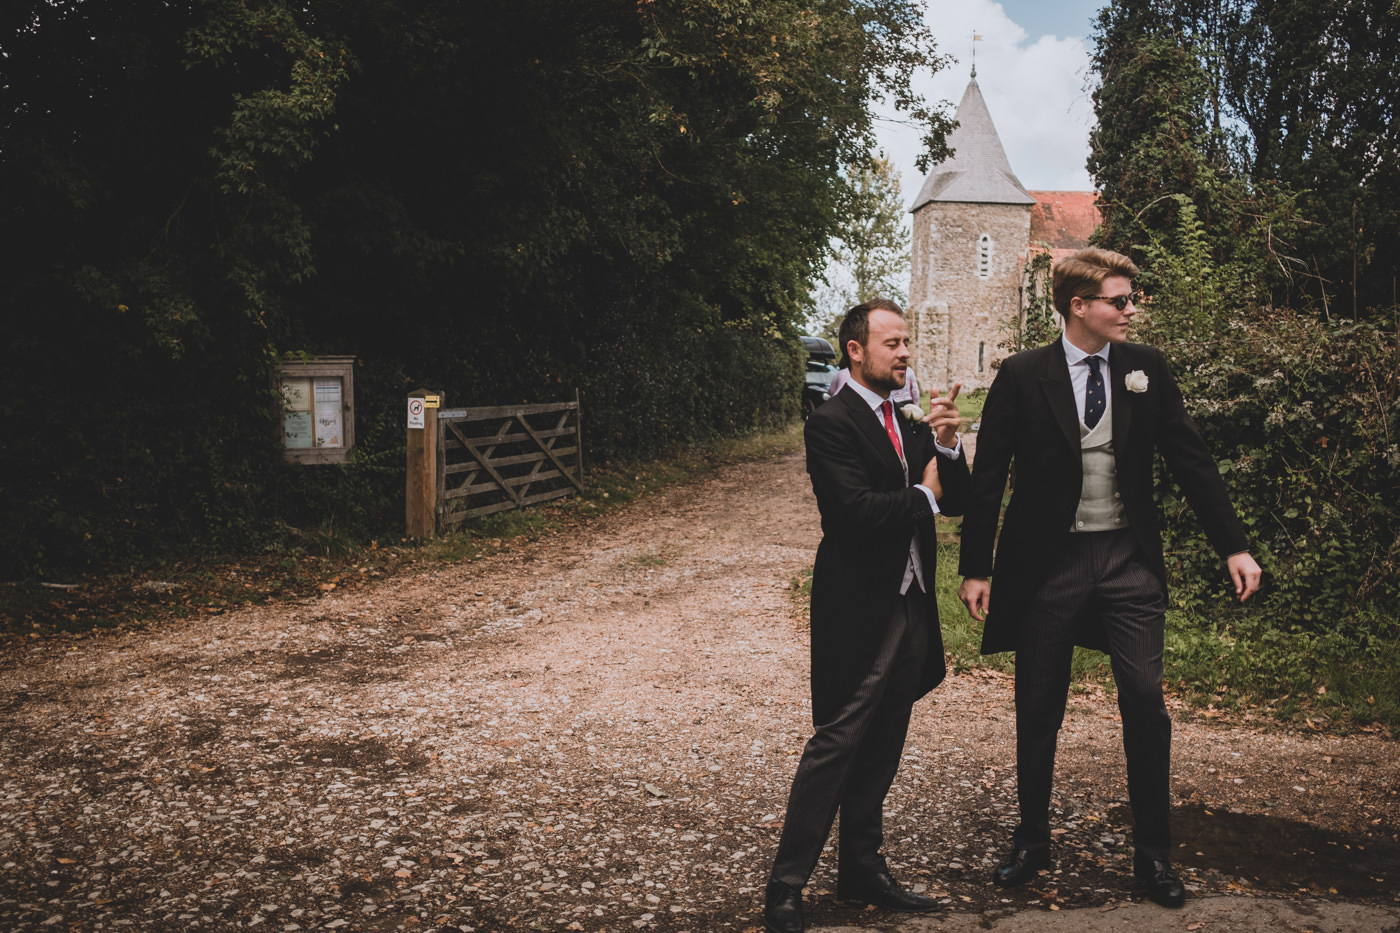 rye wedding photogra[hy